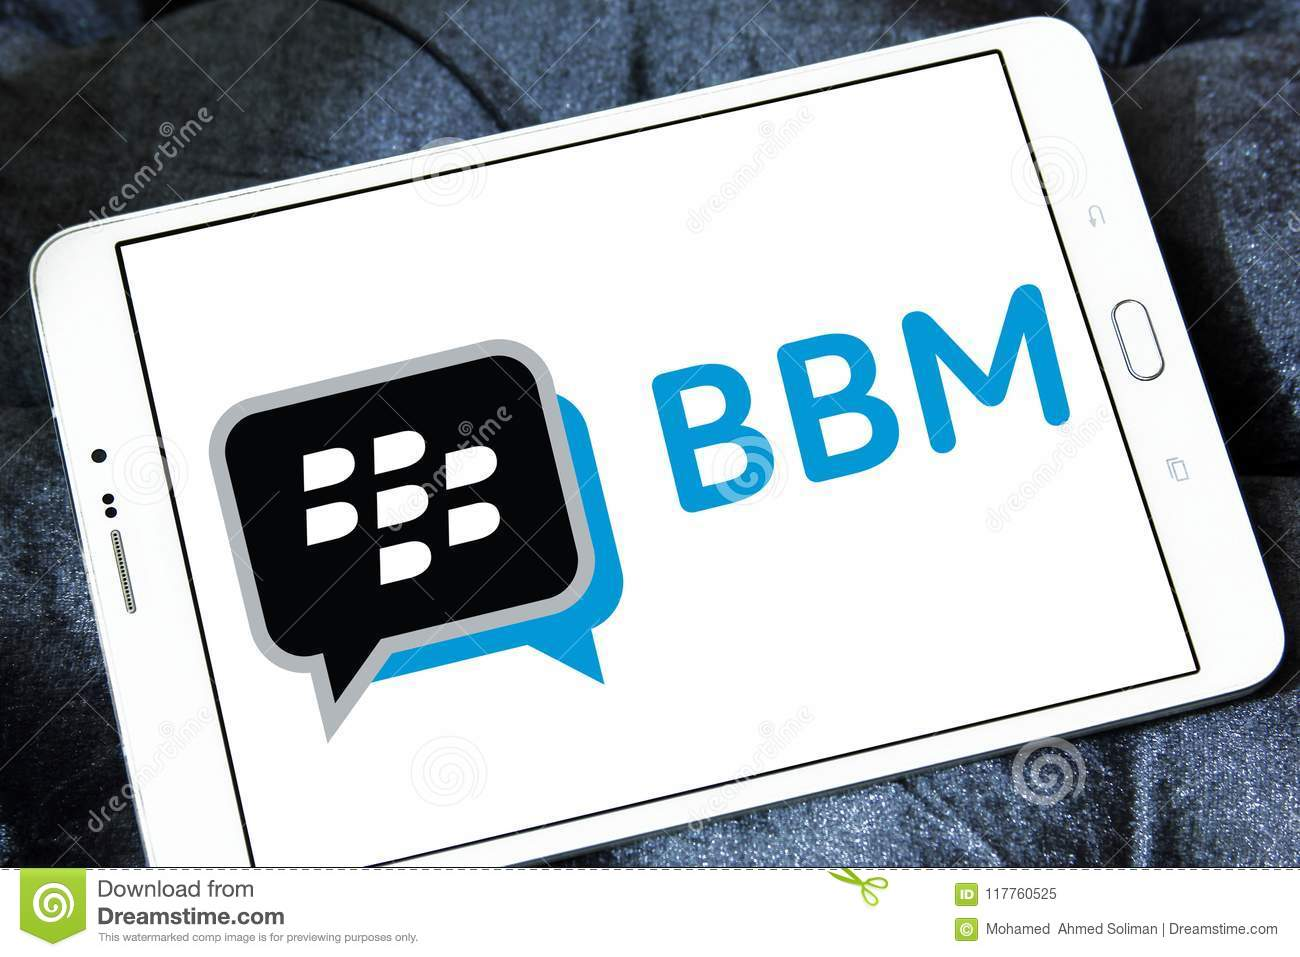 bbm download for samsung